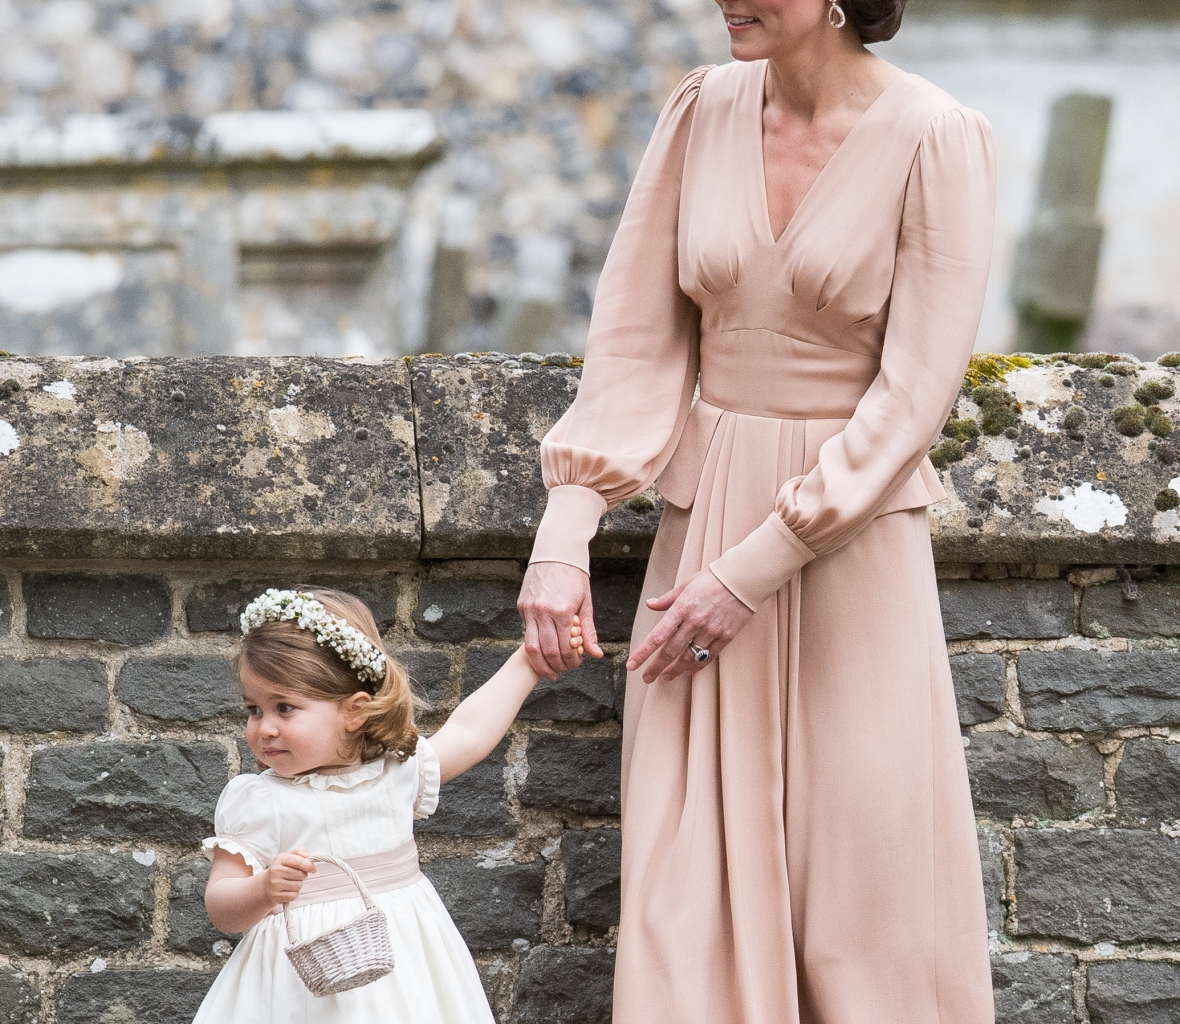 princess charlotte at pippa's wedding getty images